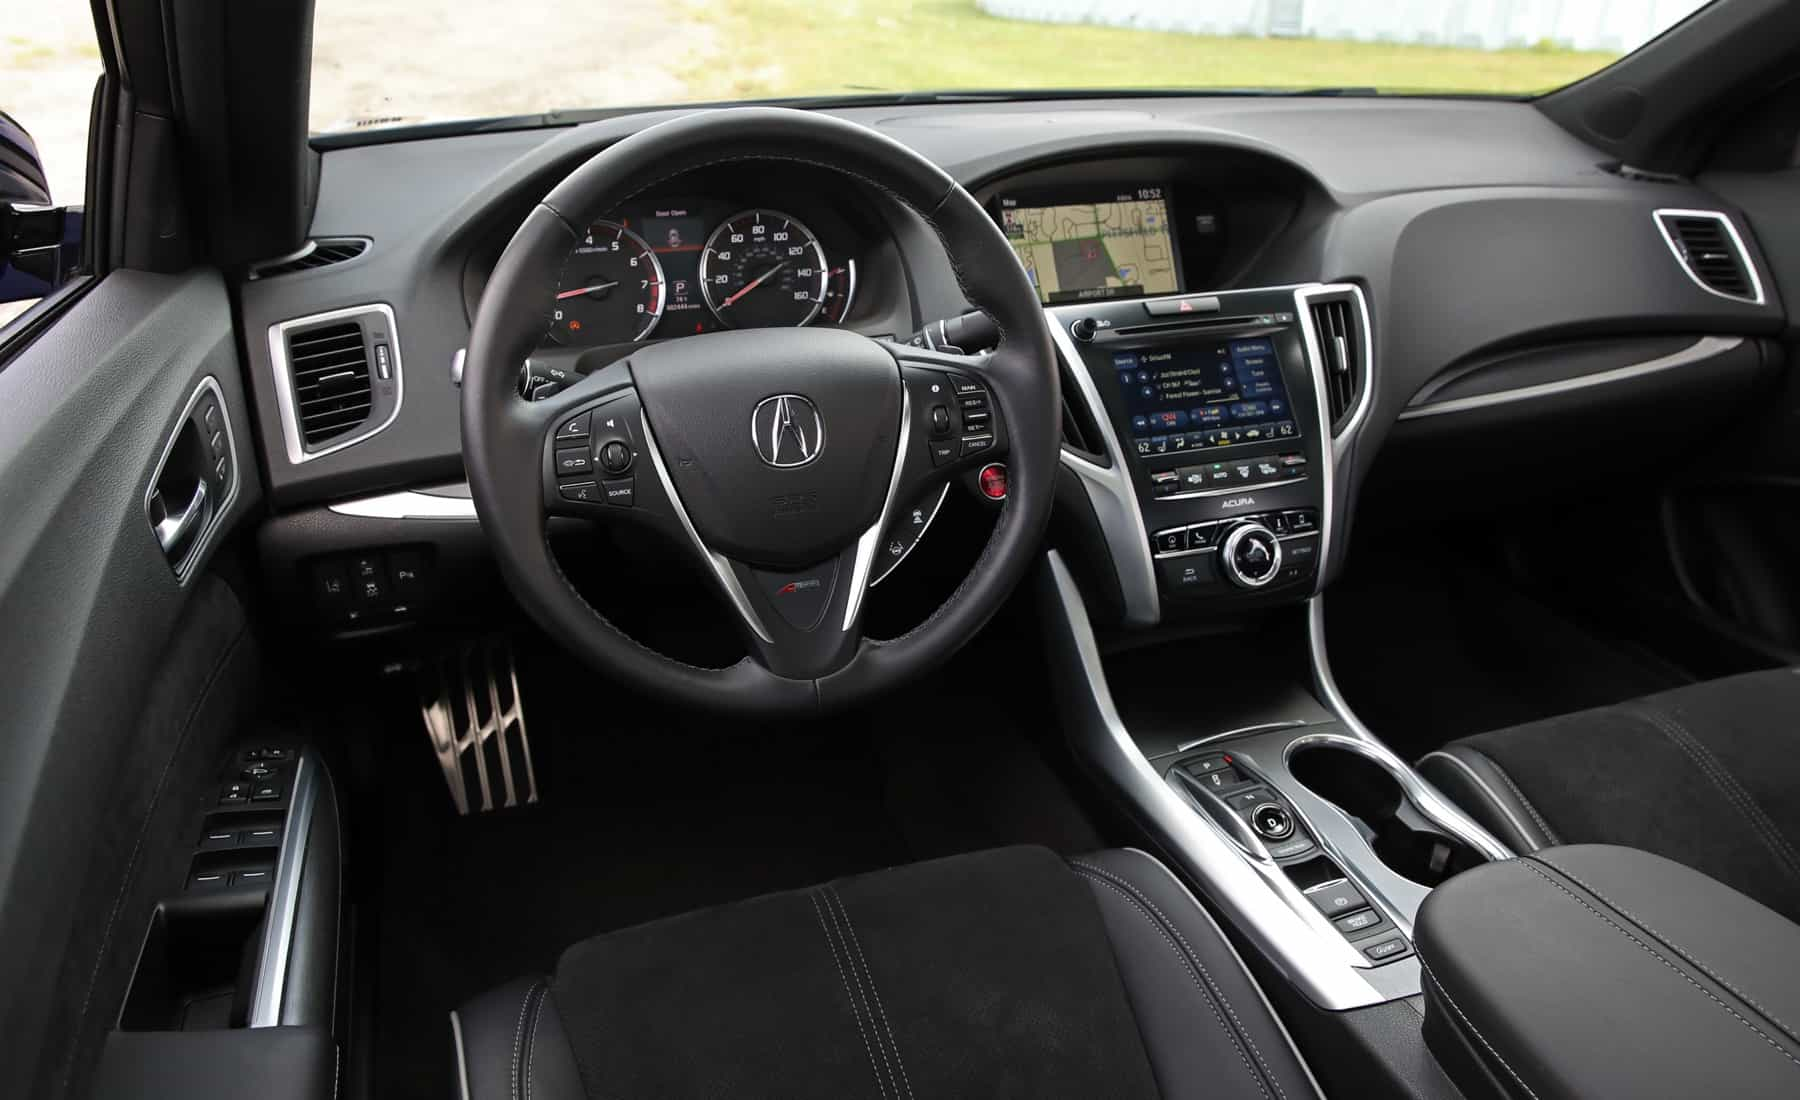 2018 Acura TLX Interior Dashboard And Steering (Photo 19 of 46)